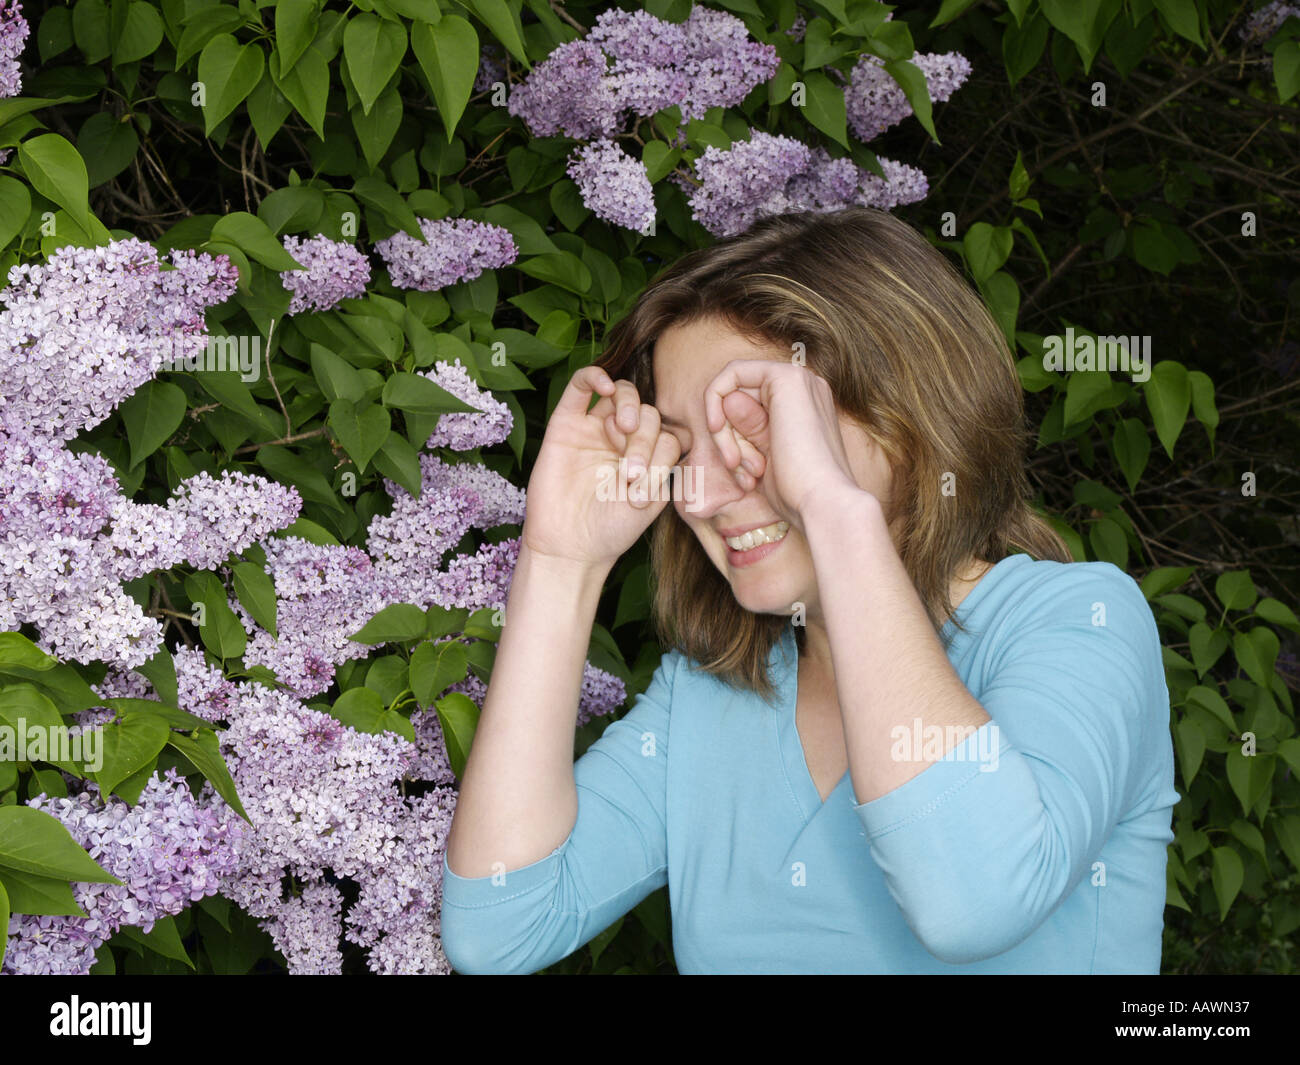 young woman teenager rubs her eyes in front of lilac in bloom - Stock Image